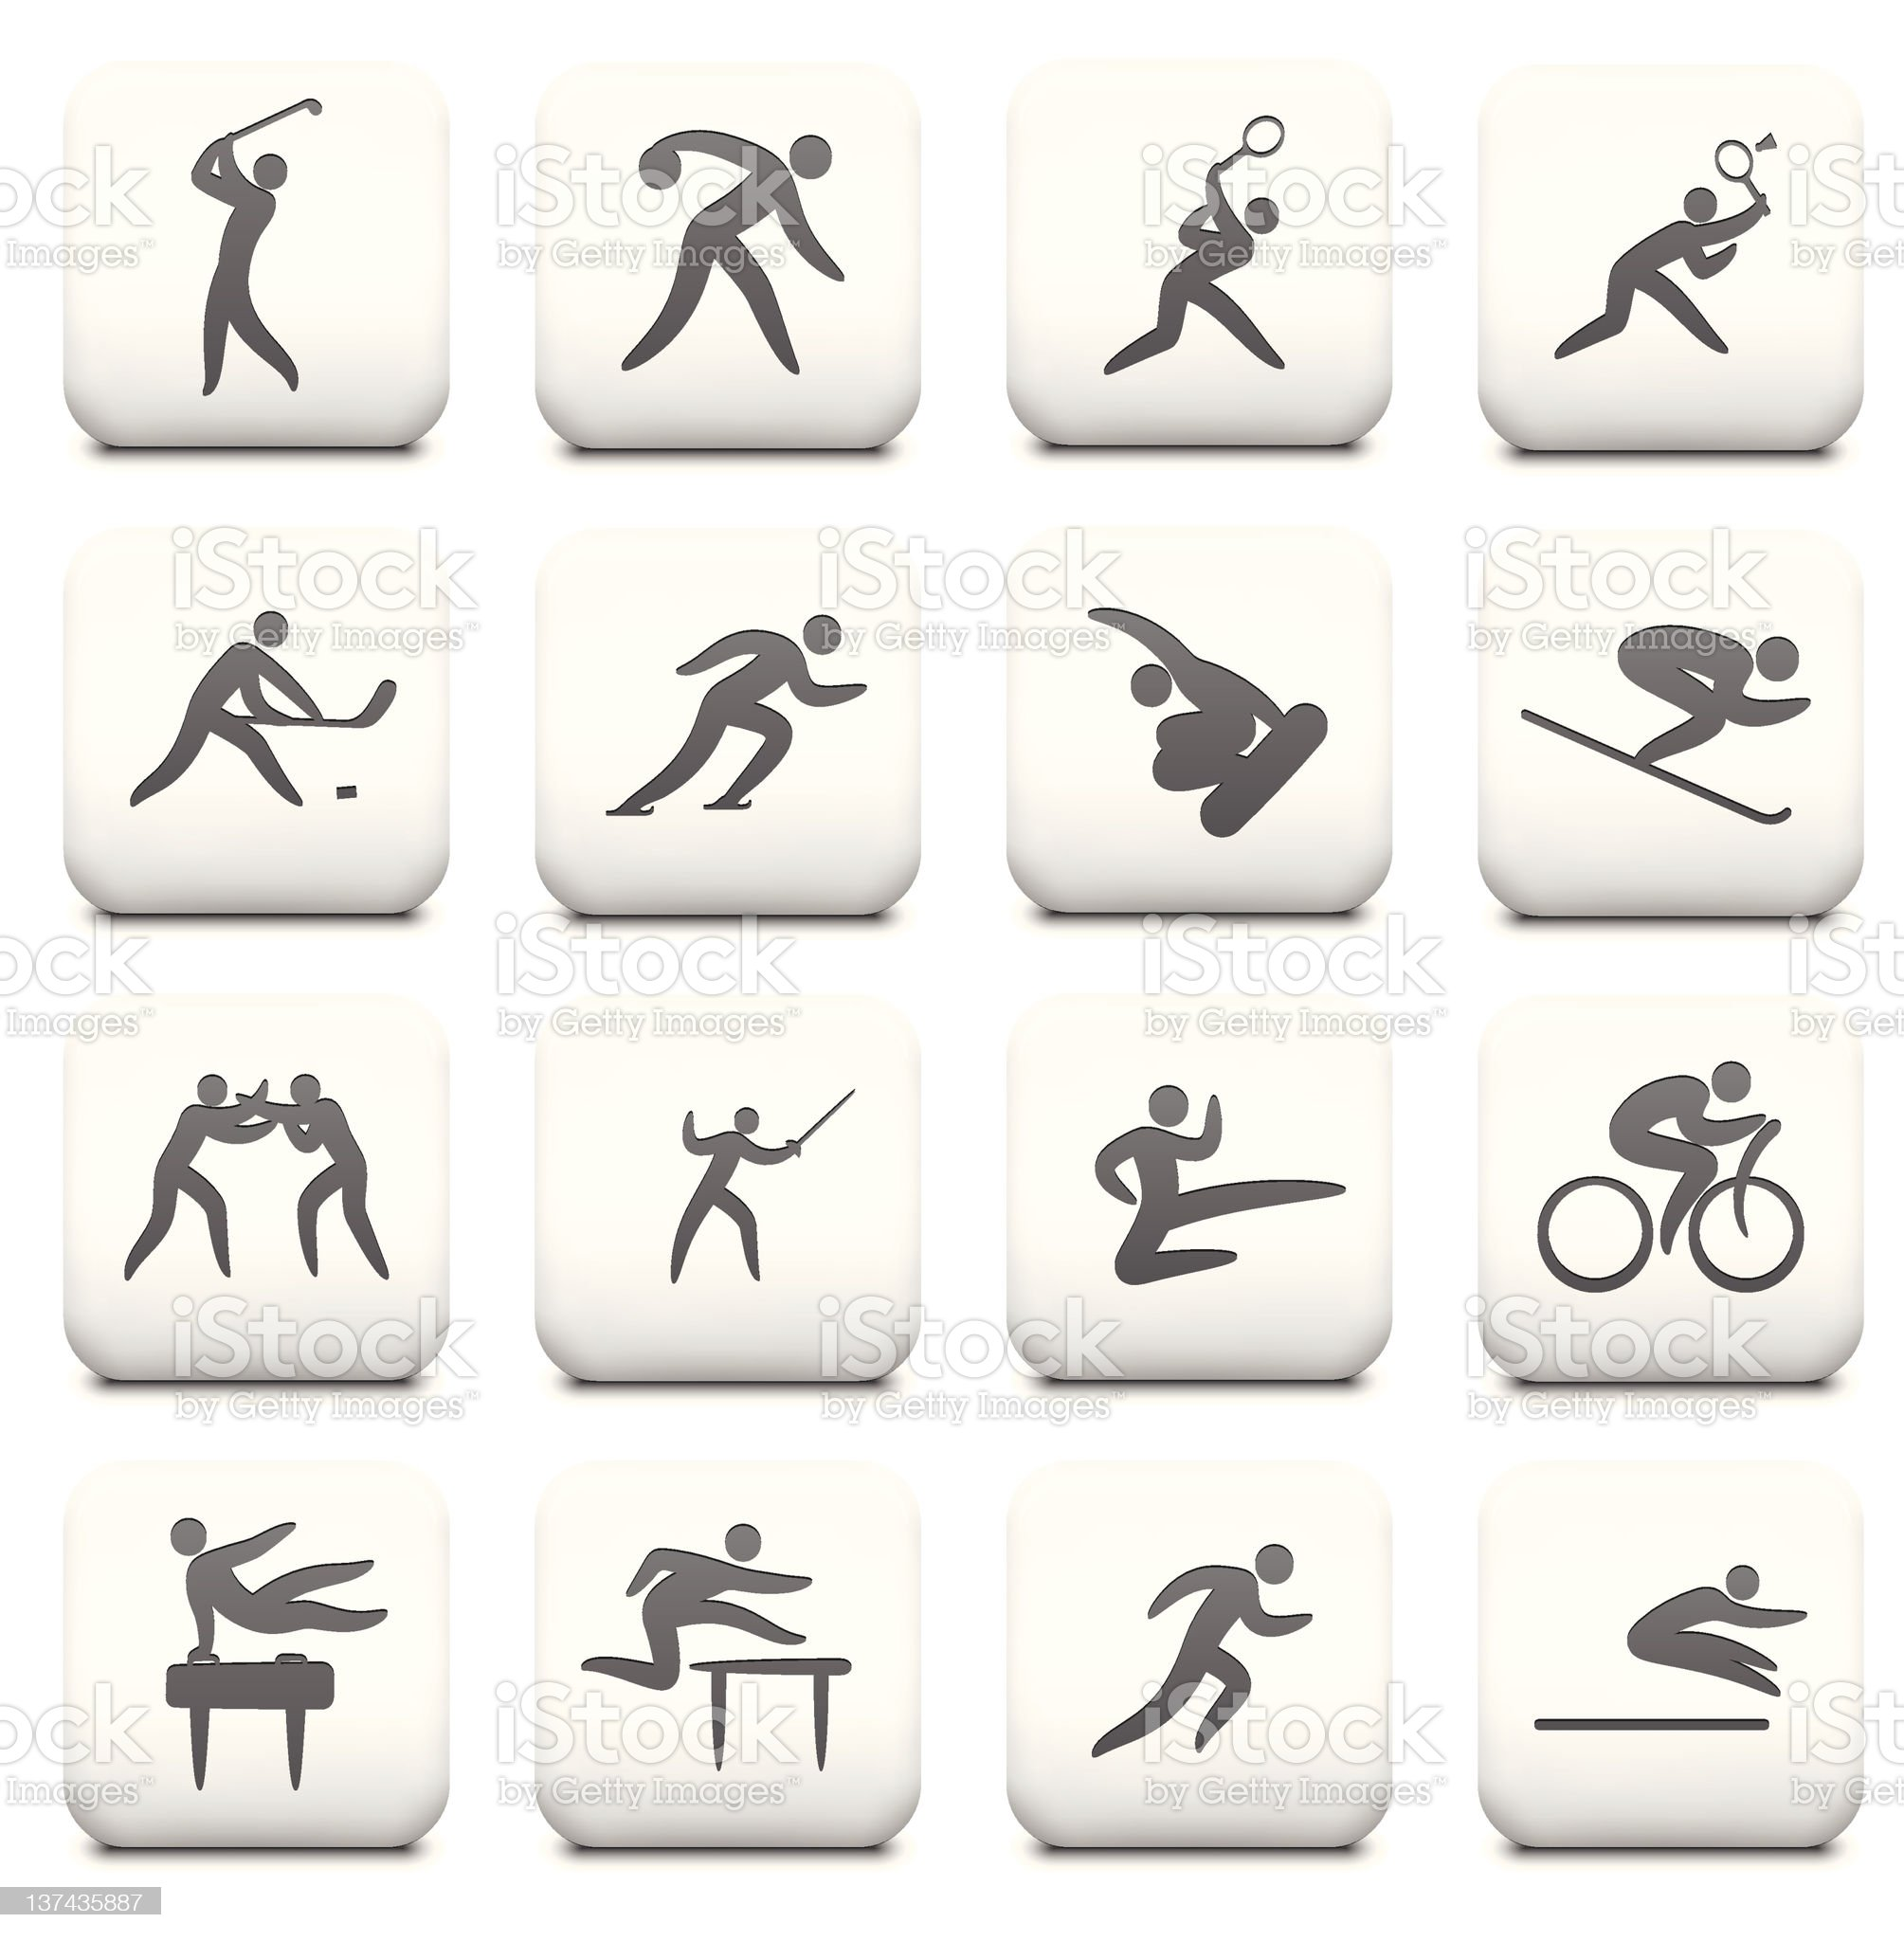 Sports Icon Collection on White Buttons royalty-free stock vector art